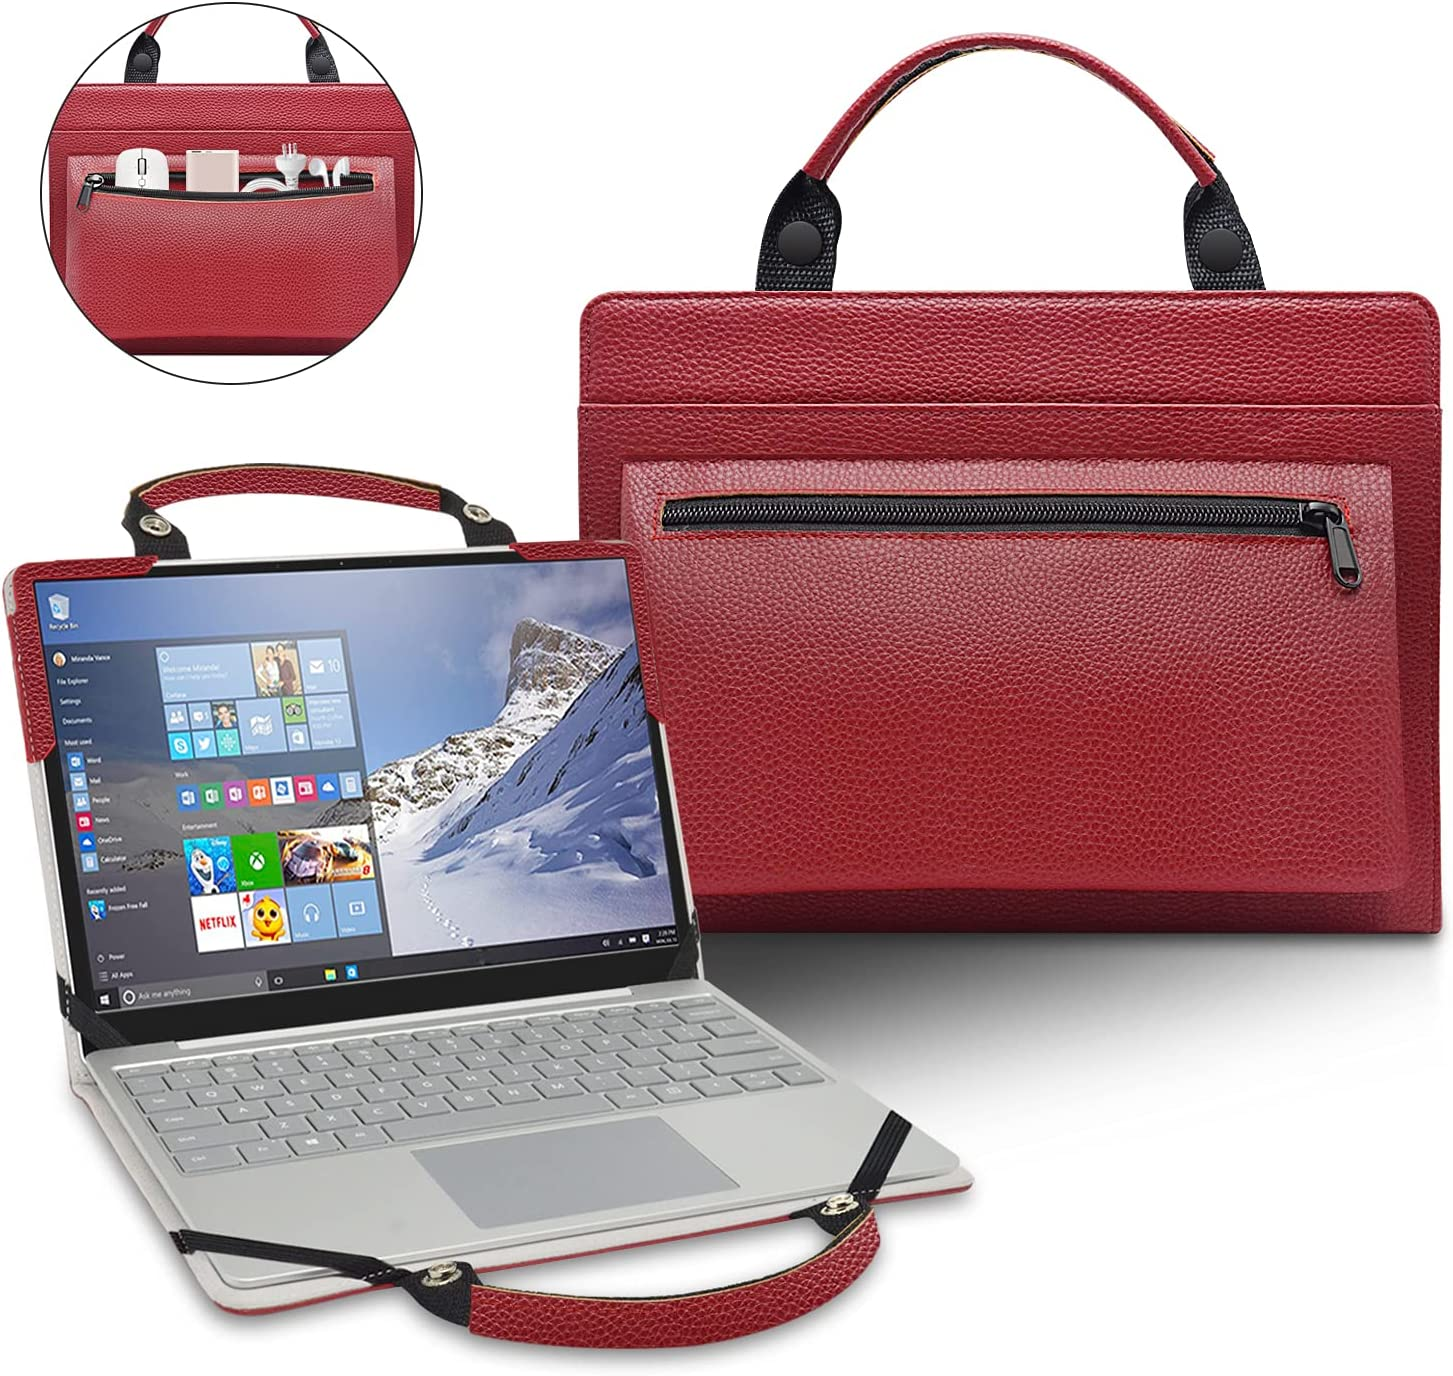 LiuShan 2 in 1 Protective Case + Portable Bag for 11.6